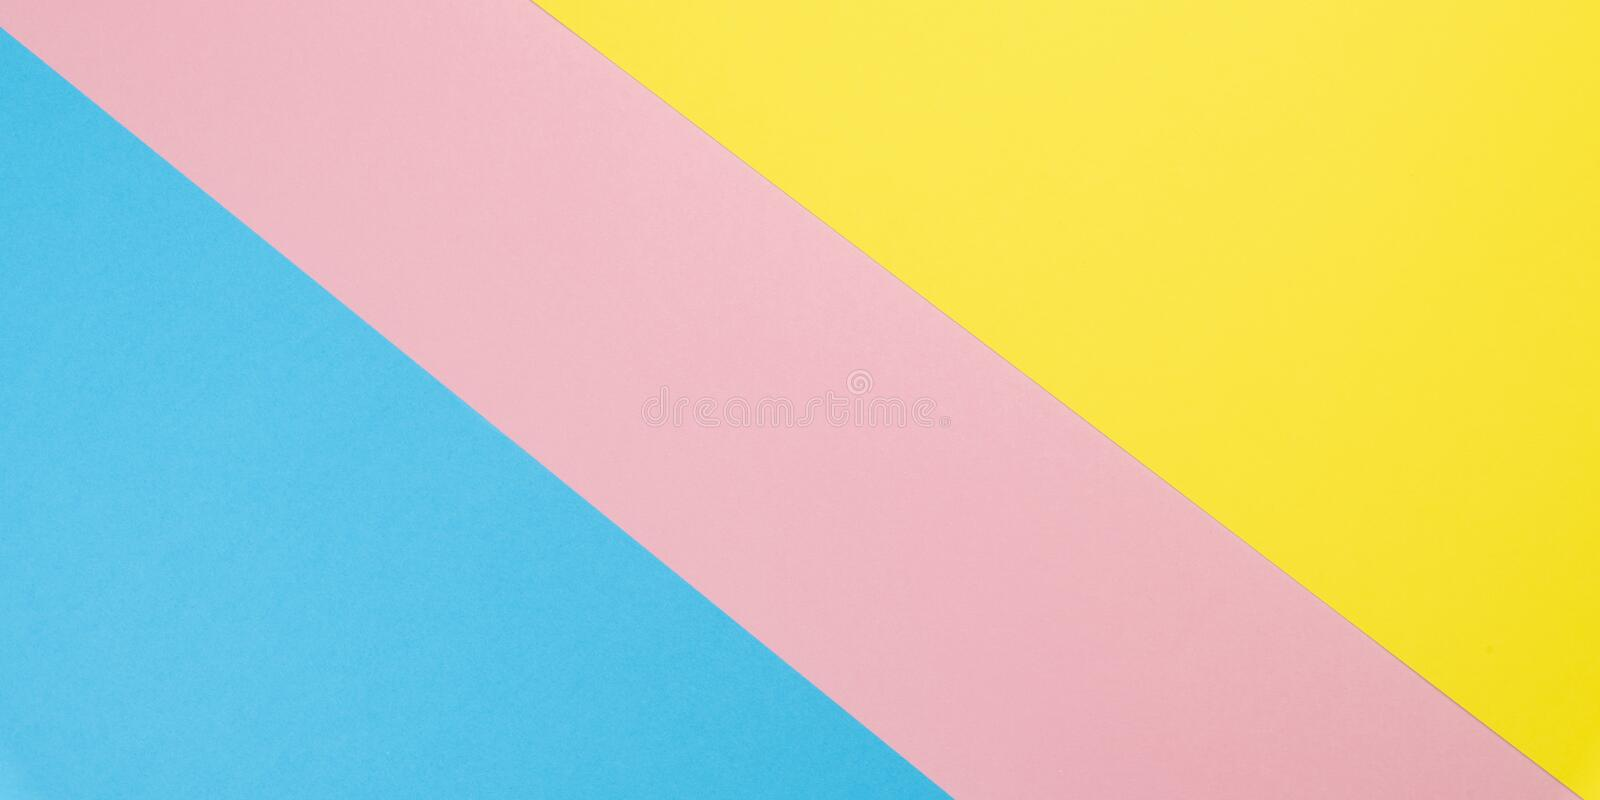 Flat lay background made of pastel colorful paper. Abstract colour line. Minimal concept geometric background.  stock photography